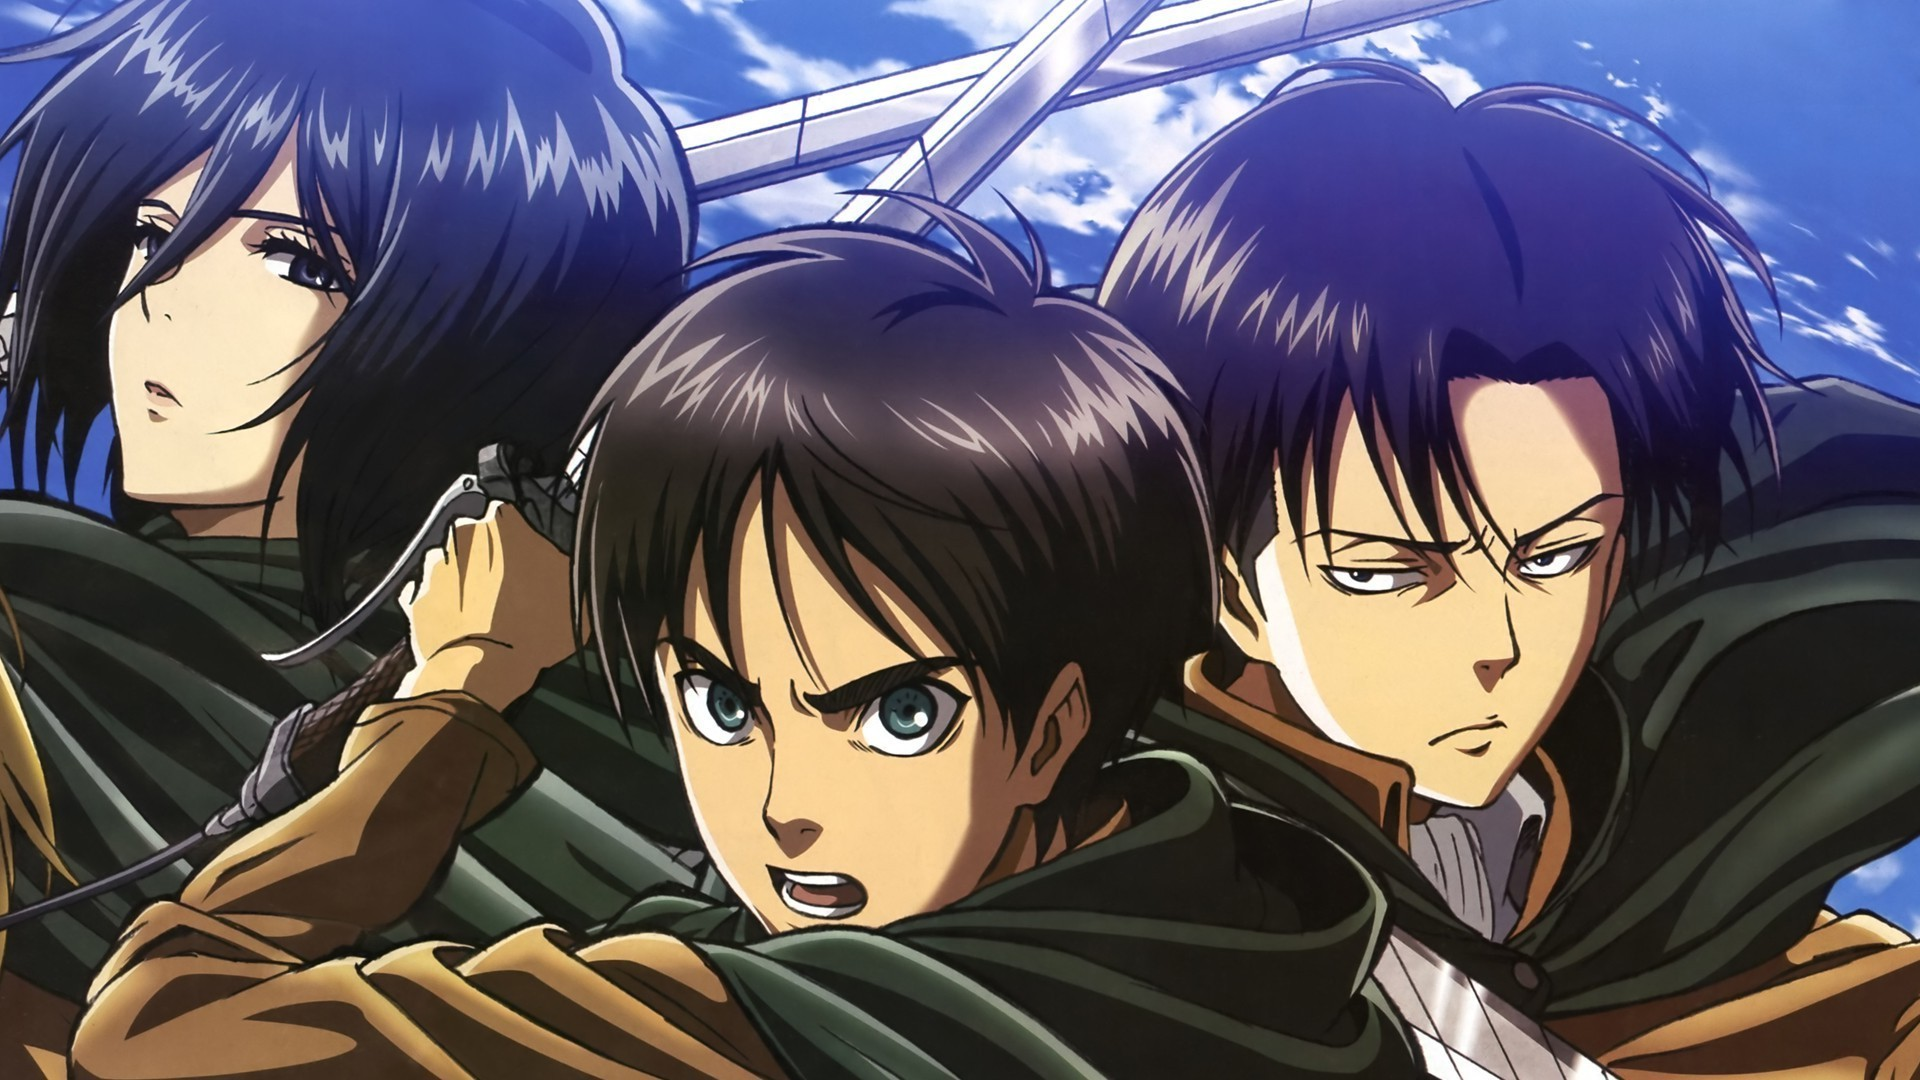 Levi Attack on Titan Wallpaper (72+ images)